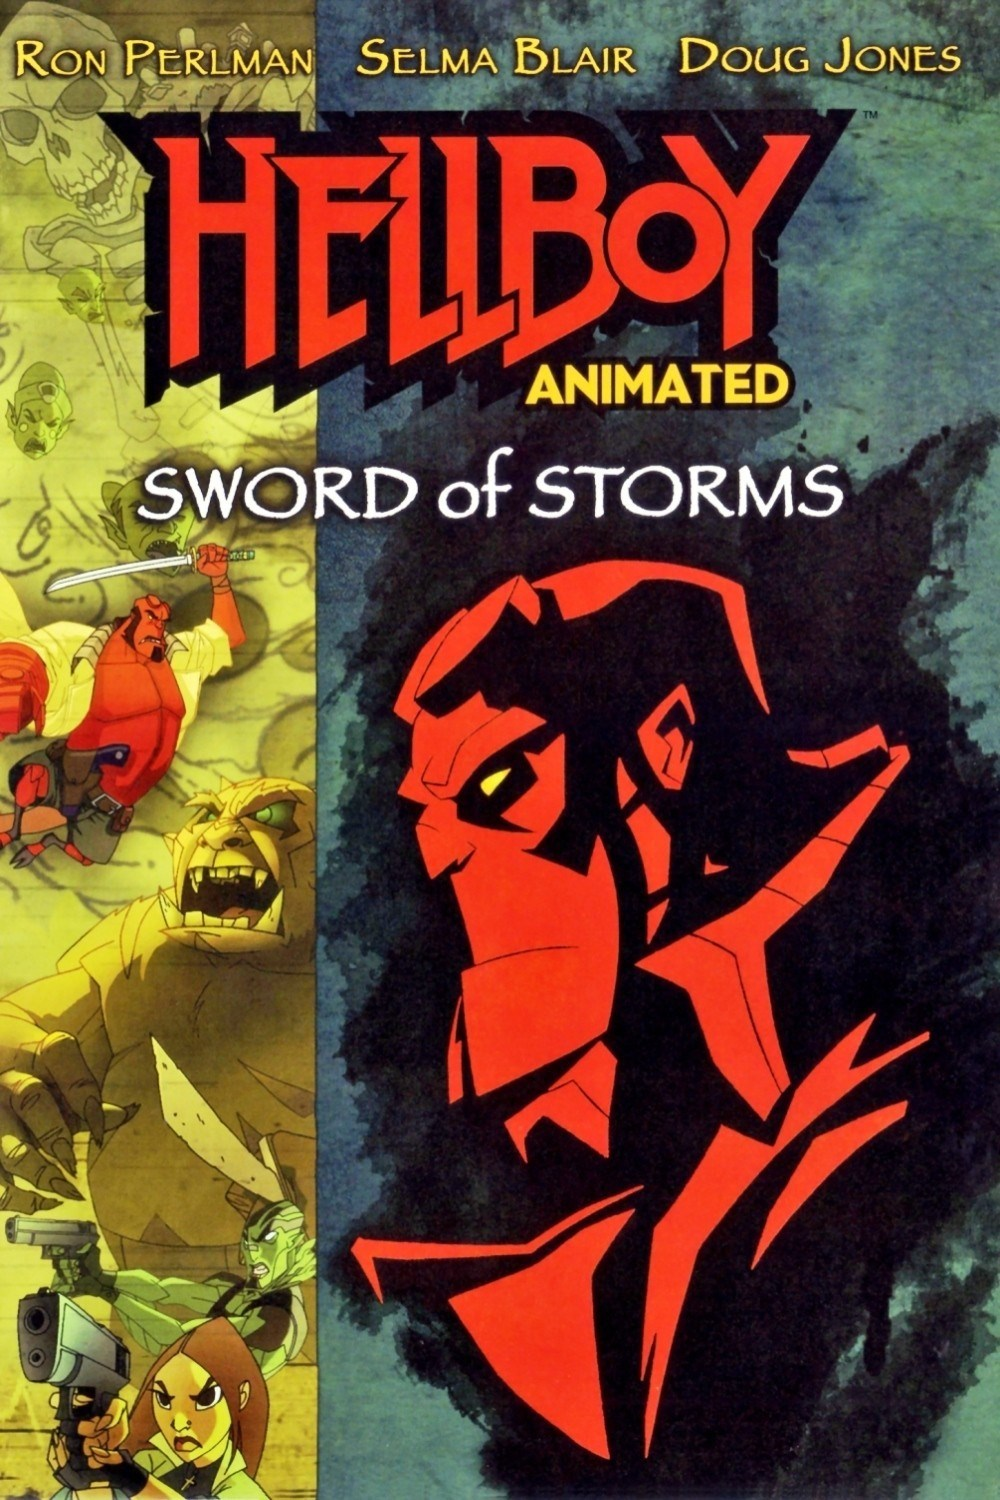 Hellboy_Sword_of_Storms_Poster